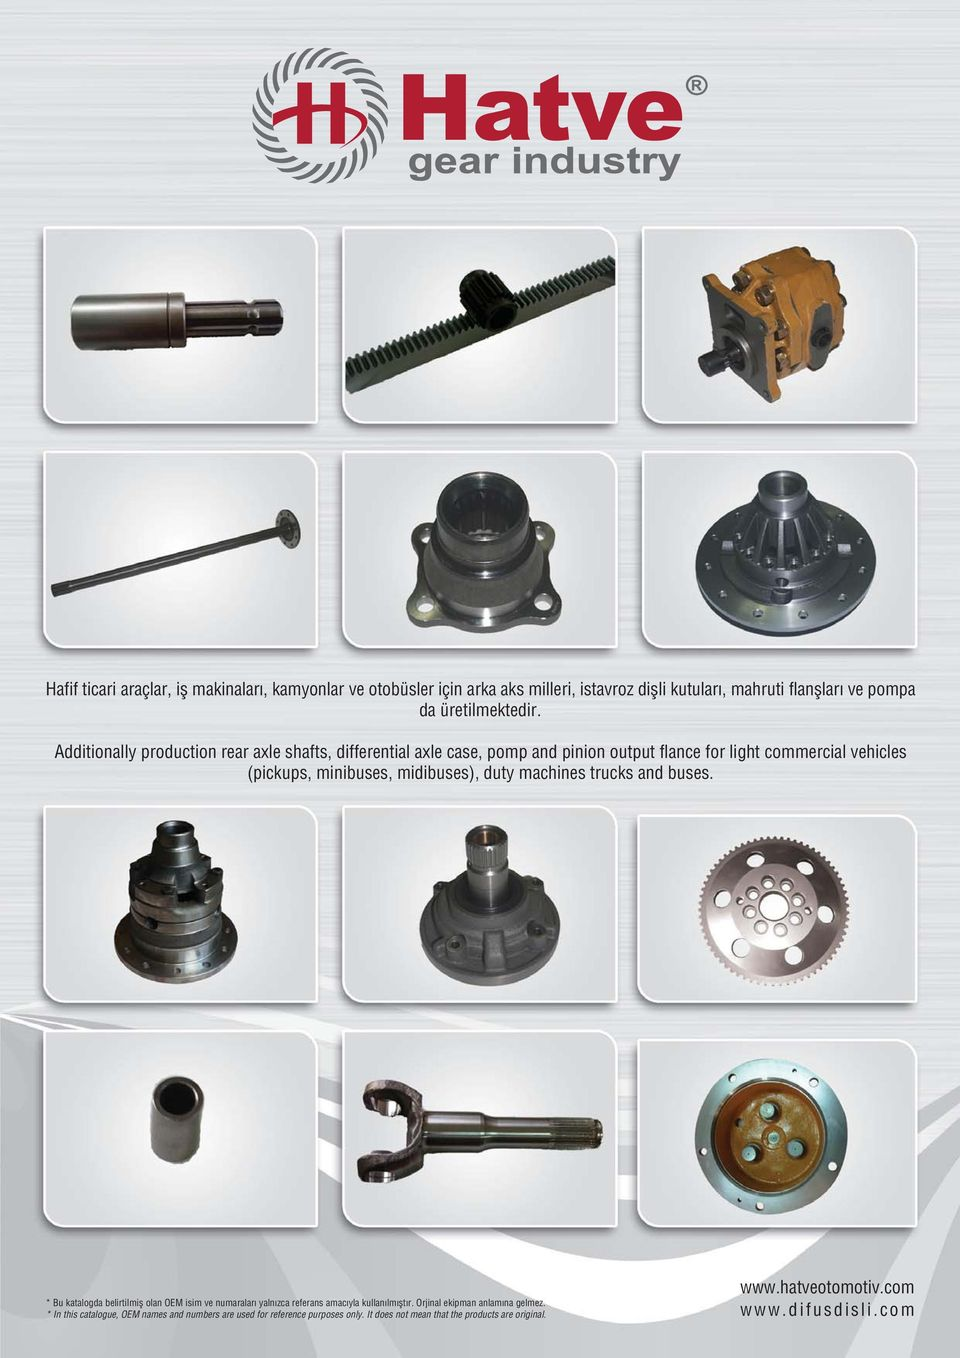 Additionally production rear axle shafts, differential axle case, pomp and pinion